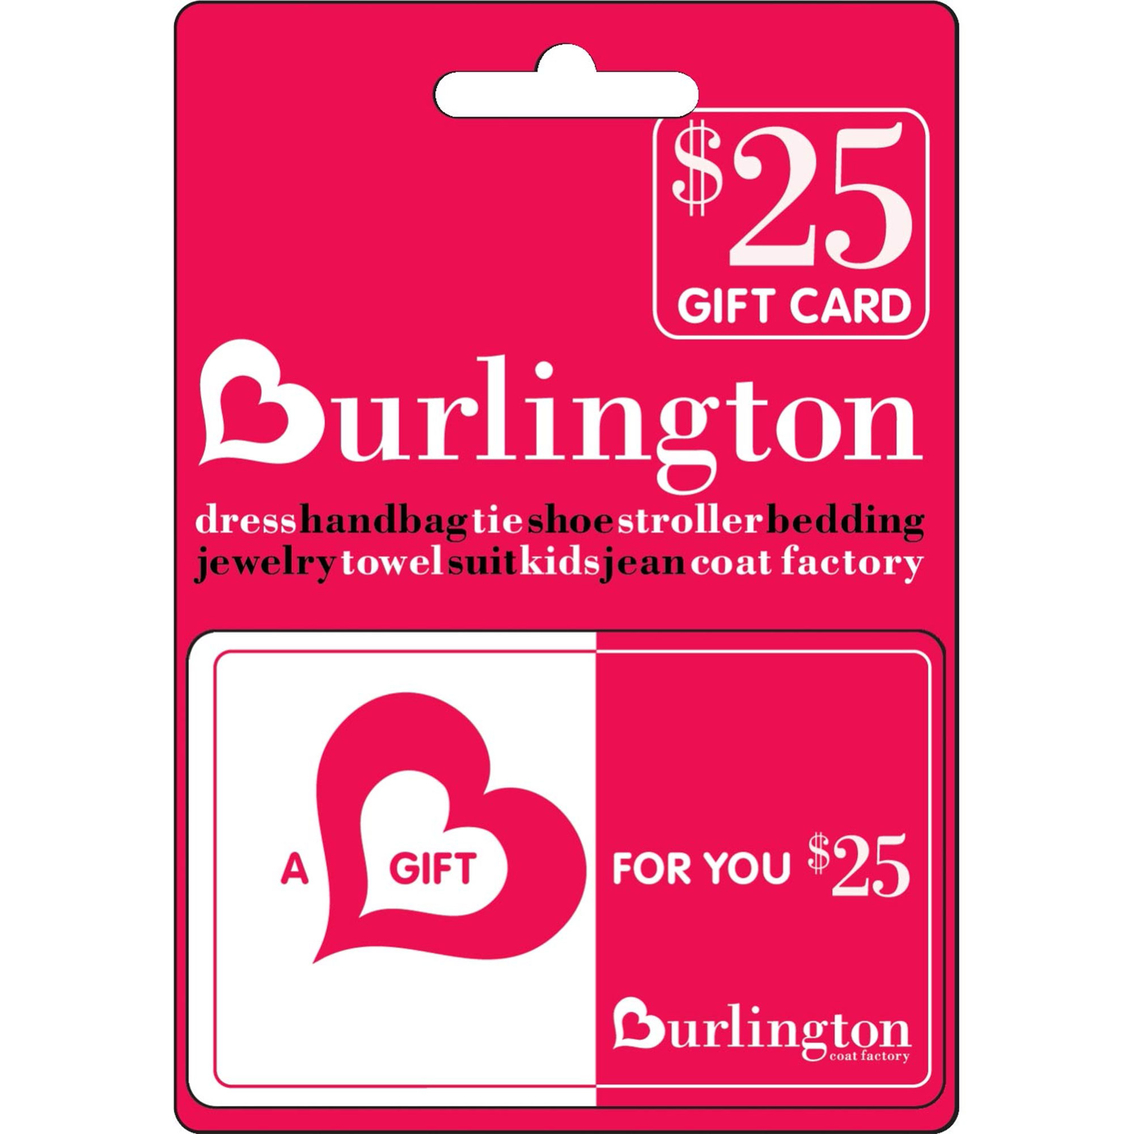 Burlington Coat Factory has designer and name-brand merchandise at up to 65% off other retailers' prices. They also offer in-store specials, style tips, and more .